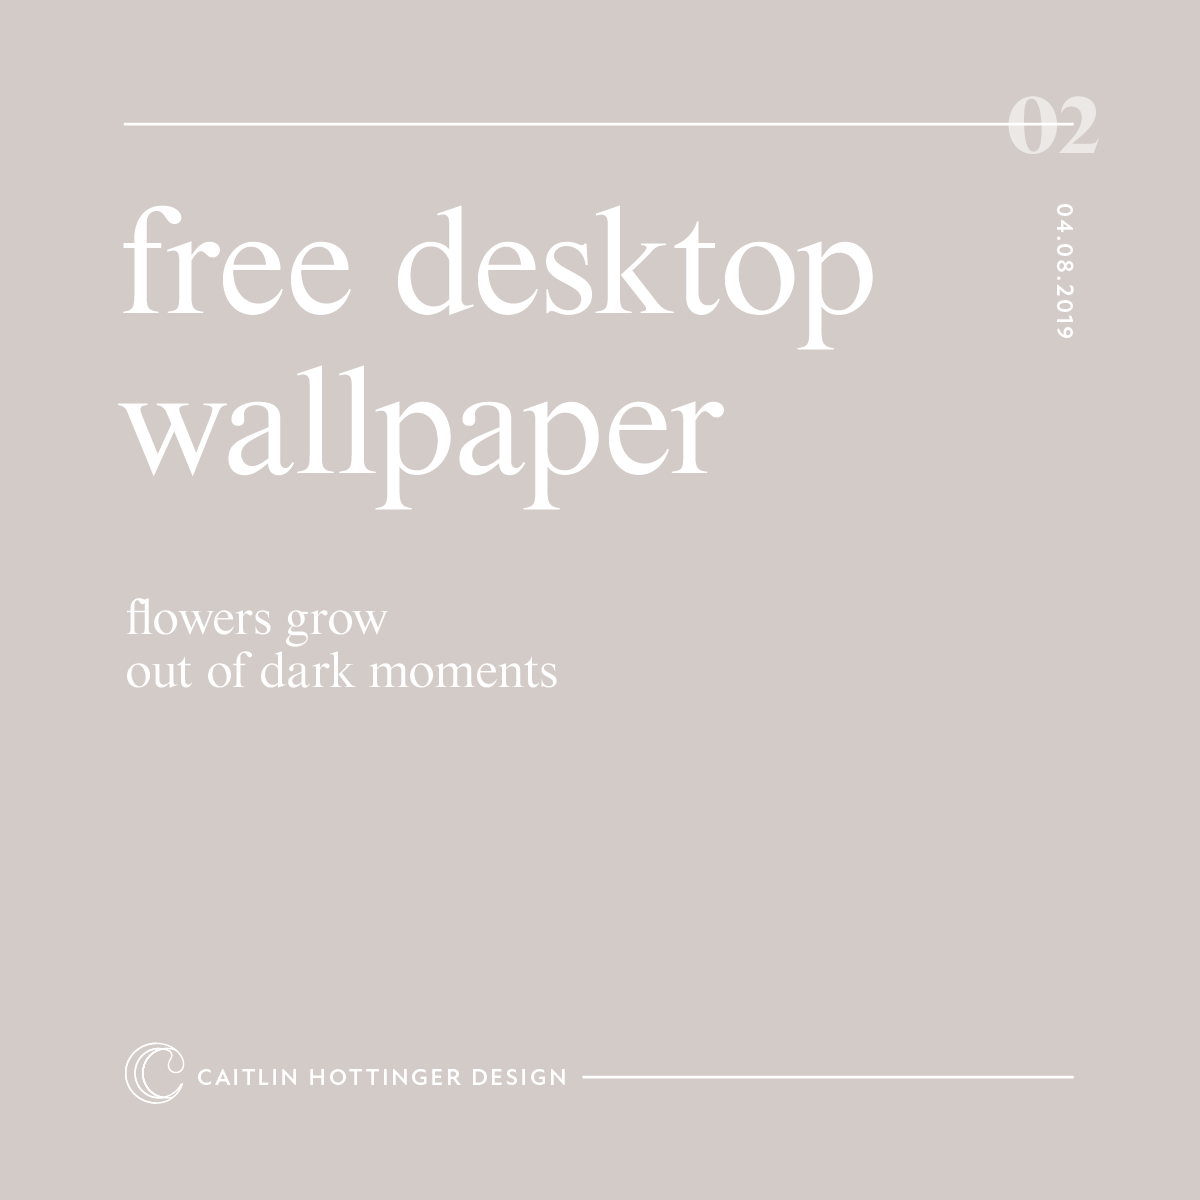 Free desktop wallpaper design by caitlin hottinger